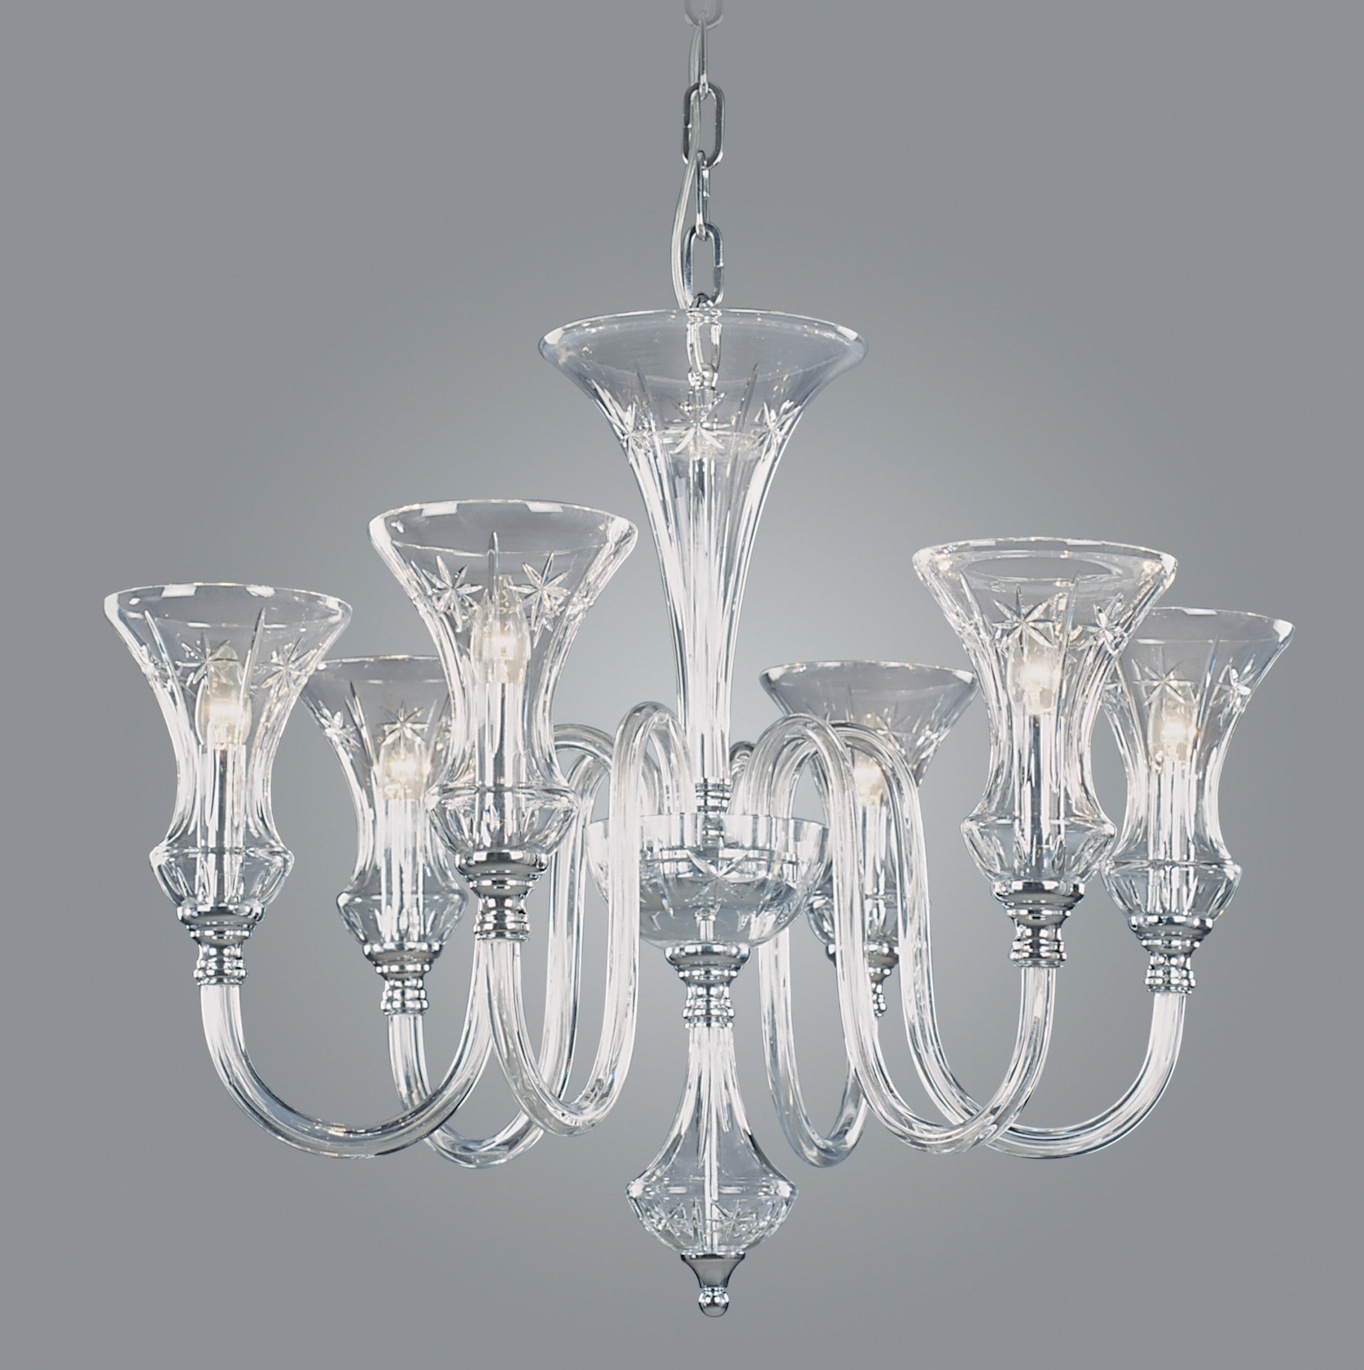 Chandelier Outstanding Modern Crystal Chandalier Modern Crystal Within White And Crystal Chandeliers (Image 11 of 25)